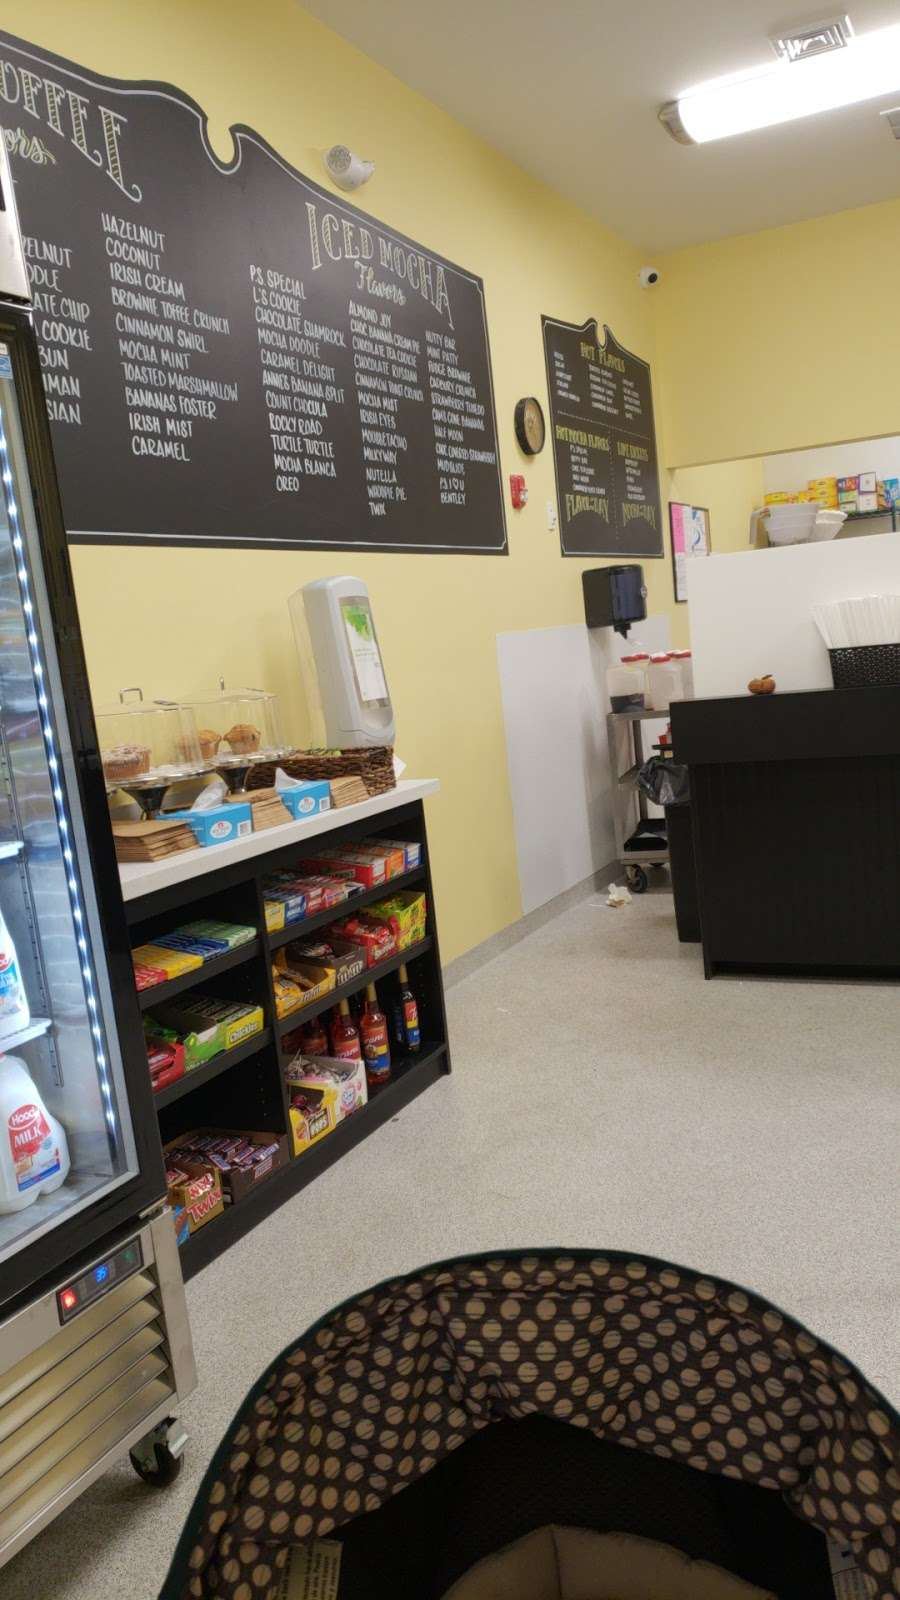 PS Gourmet Coffee - cafe    Photo 1 of 2   Address: 10 Commercial St, Braintree, MA 02184, USA   Phone: (781) 380-5122